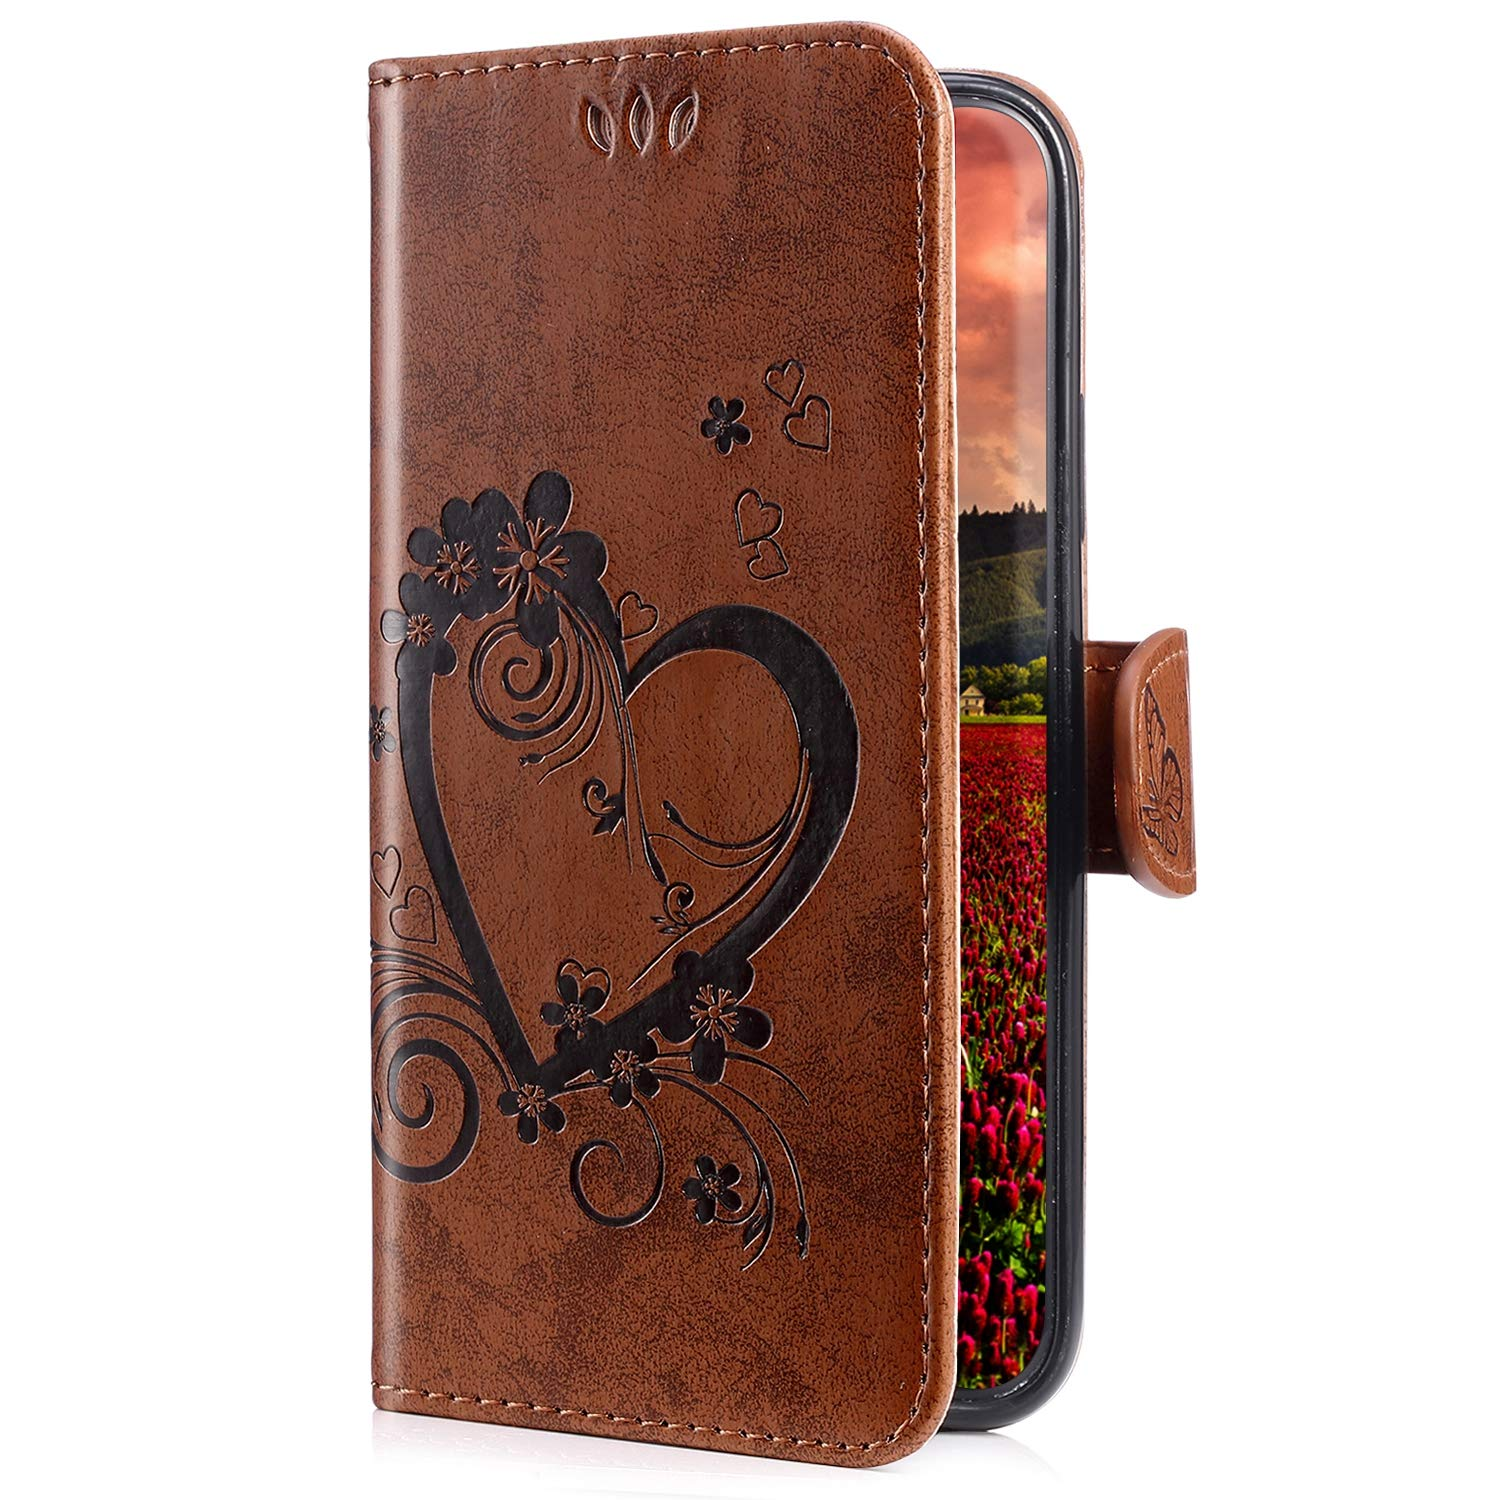 Uposao Compatible with Samsung Galaxy Note 9 Leather Case, Luxury Butterfly Heart Flower Pattern Leather Wallet Flip Protective Phone Case Book Case Cover with Stand,White PYHT010035